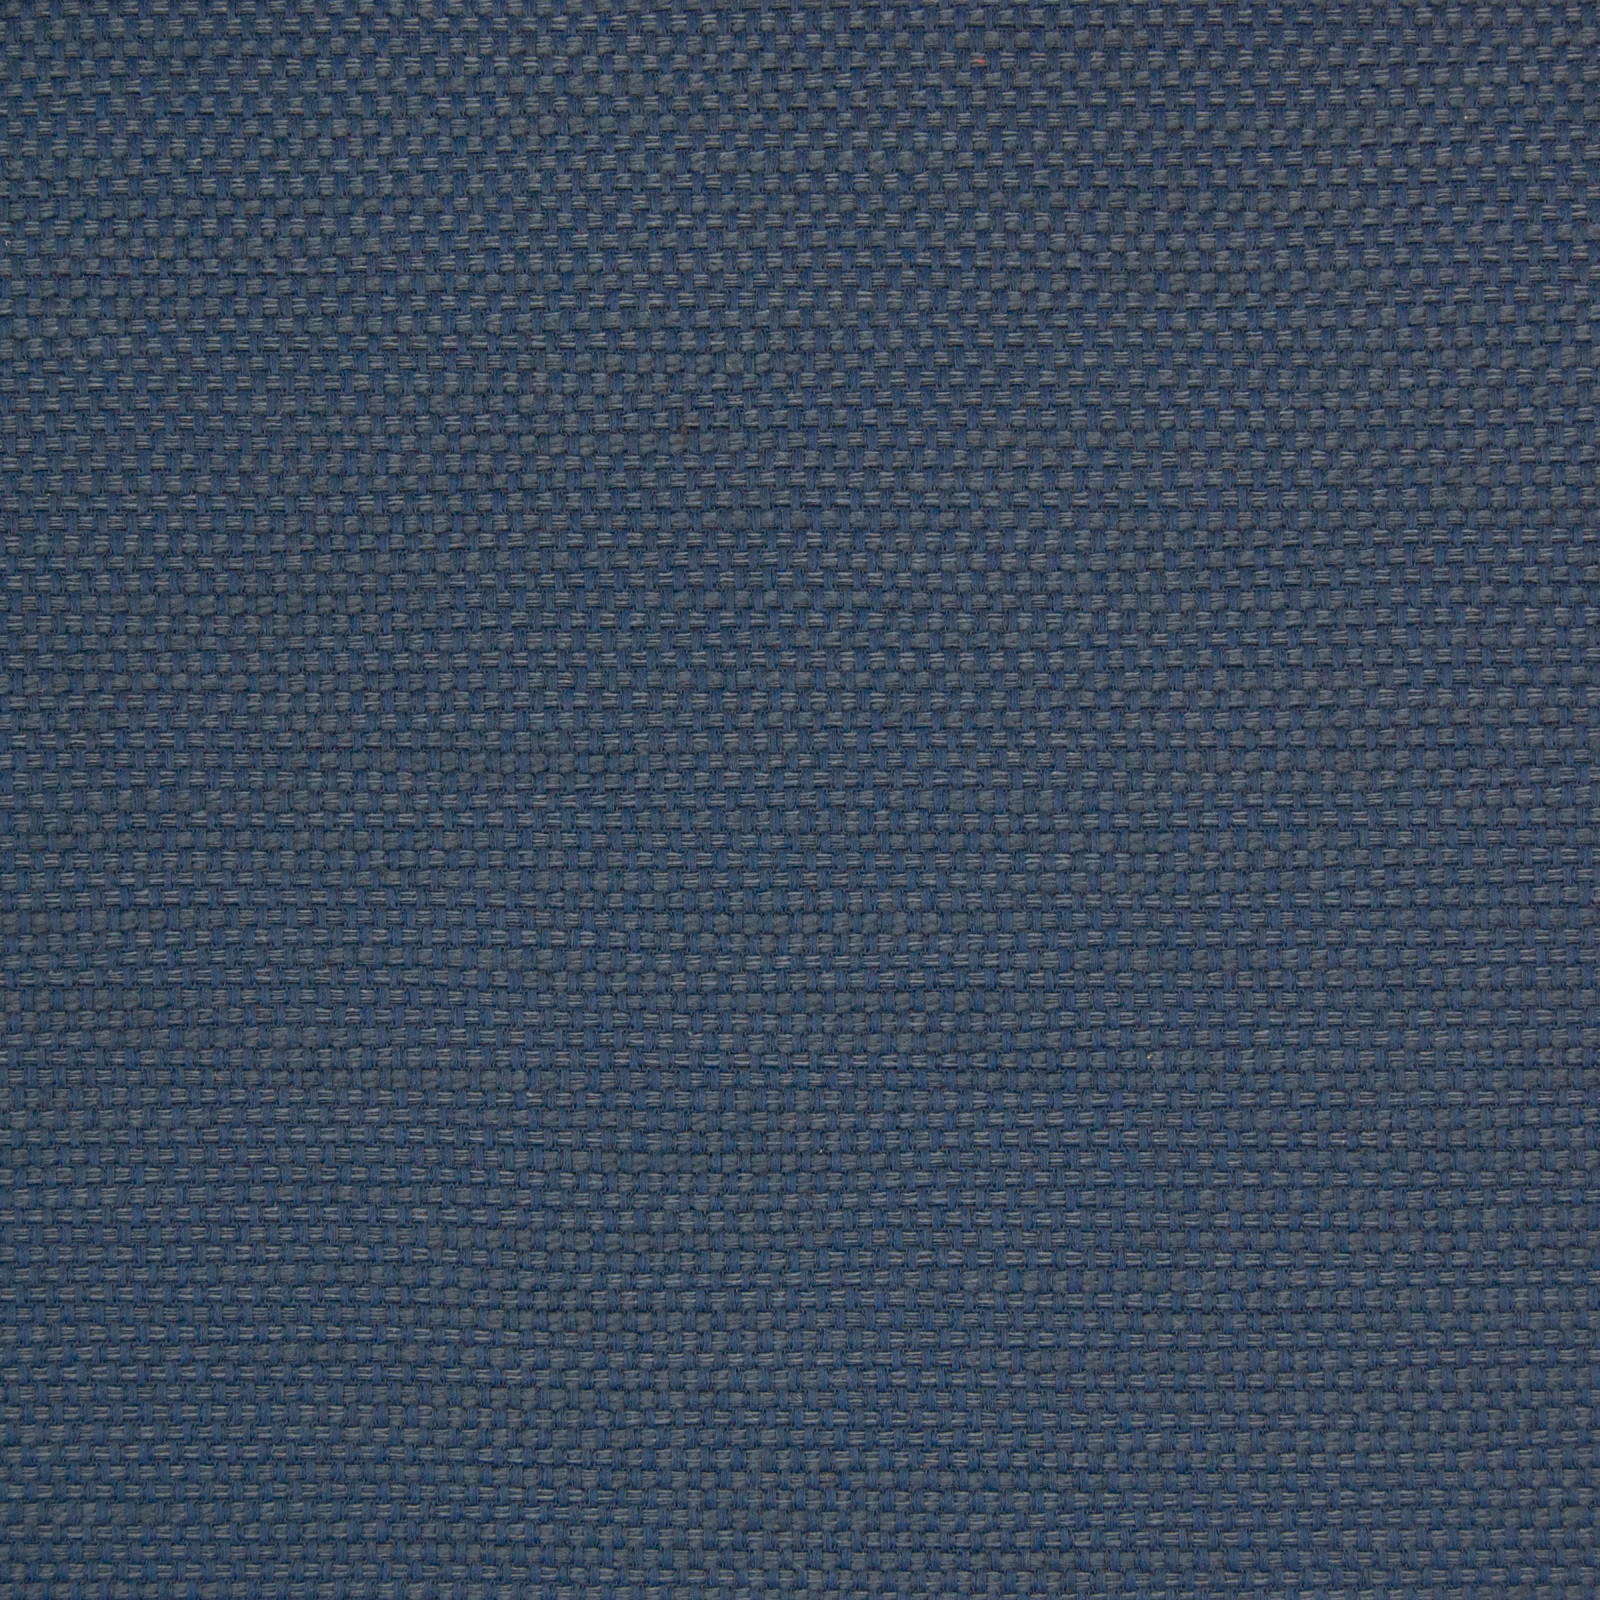 Classic Navy Blue Solid Woven Upholstery Fabric